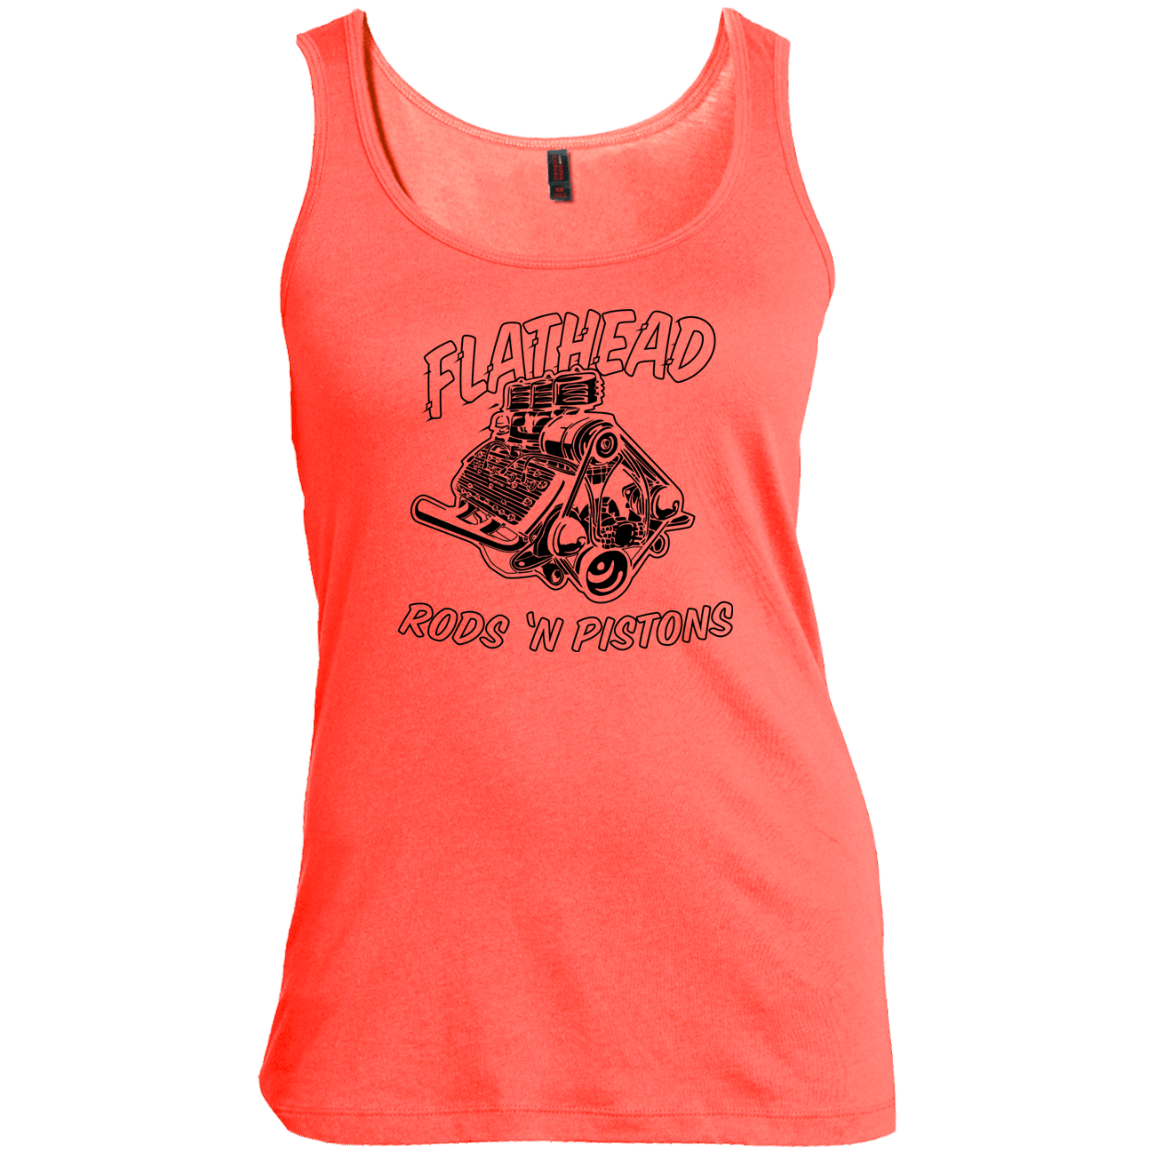 Flathead Women's Scoop Neck Tank Top